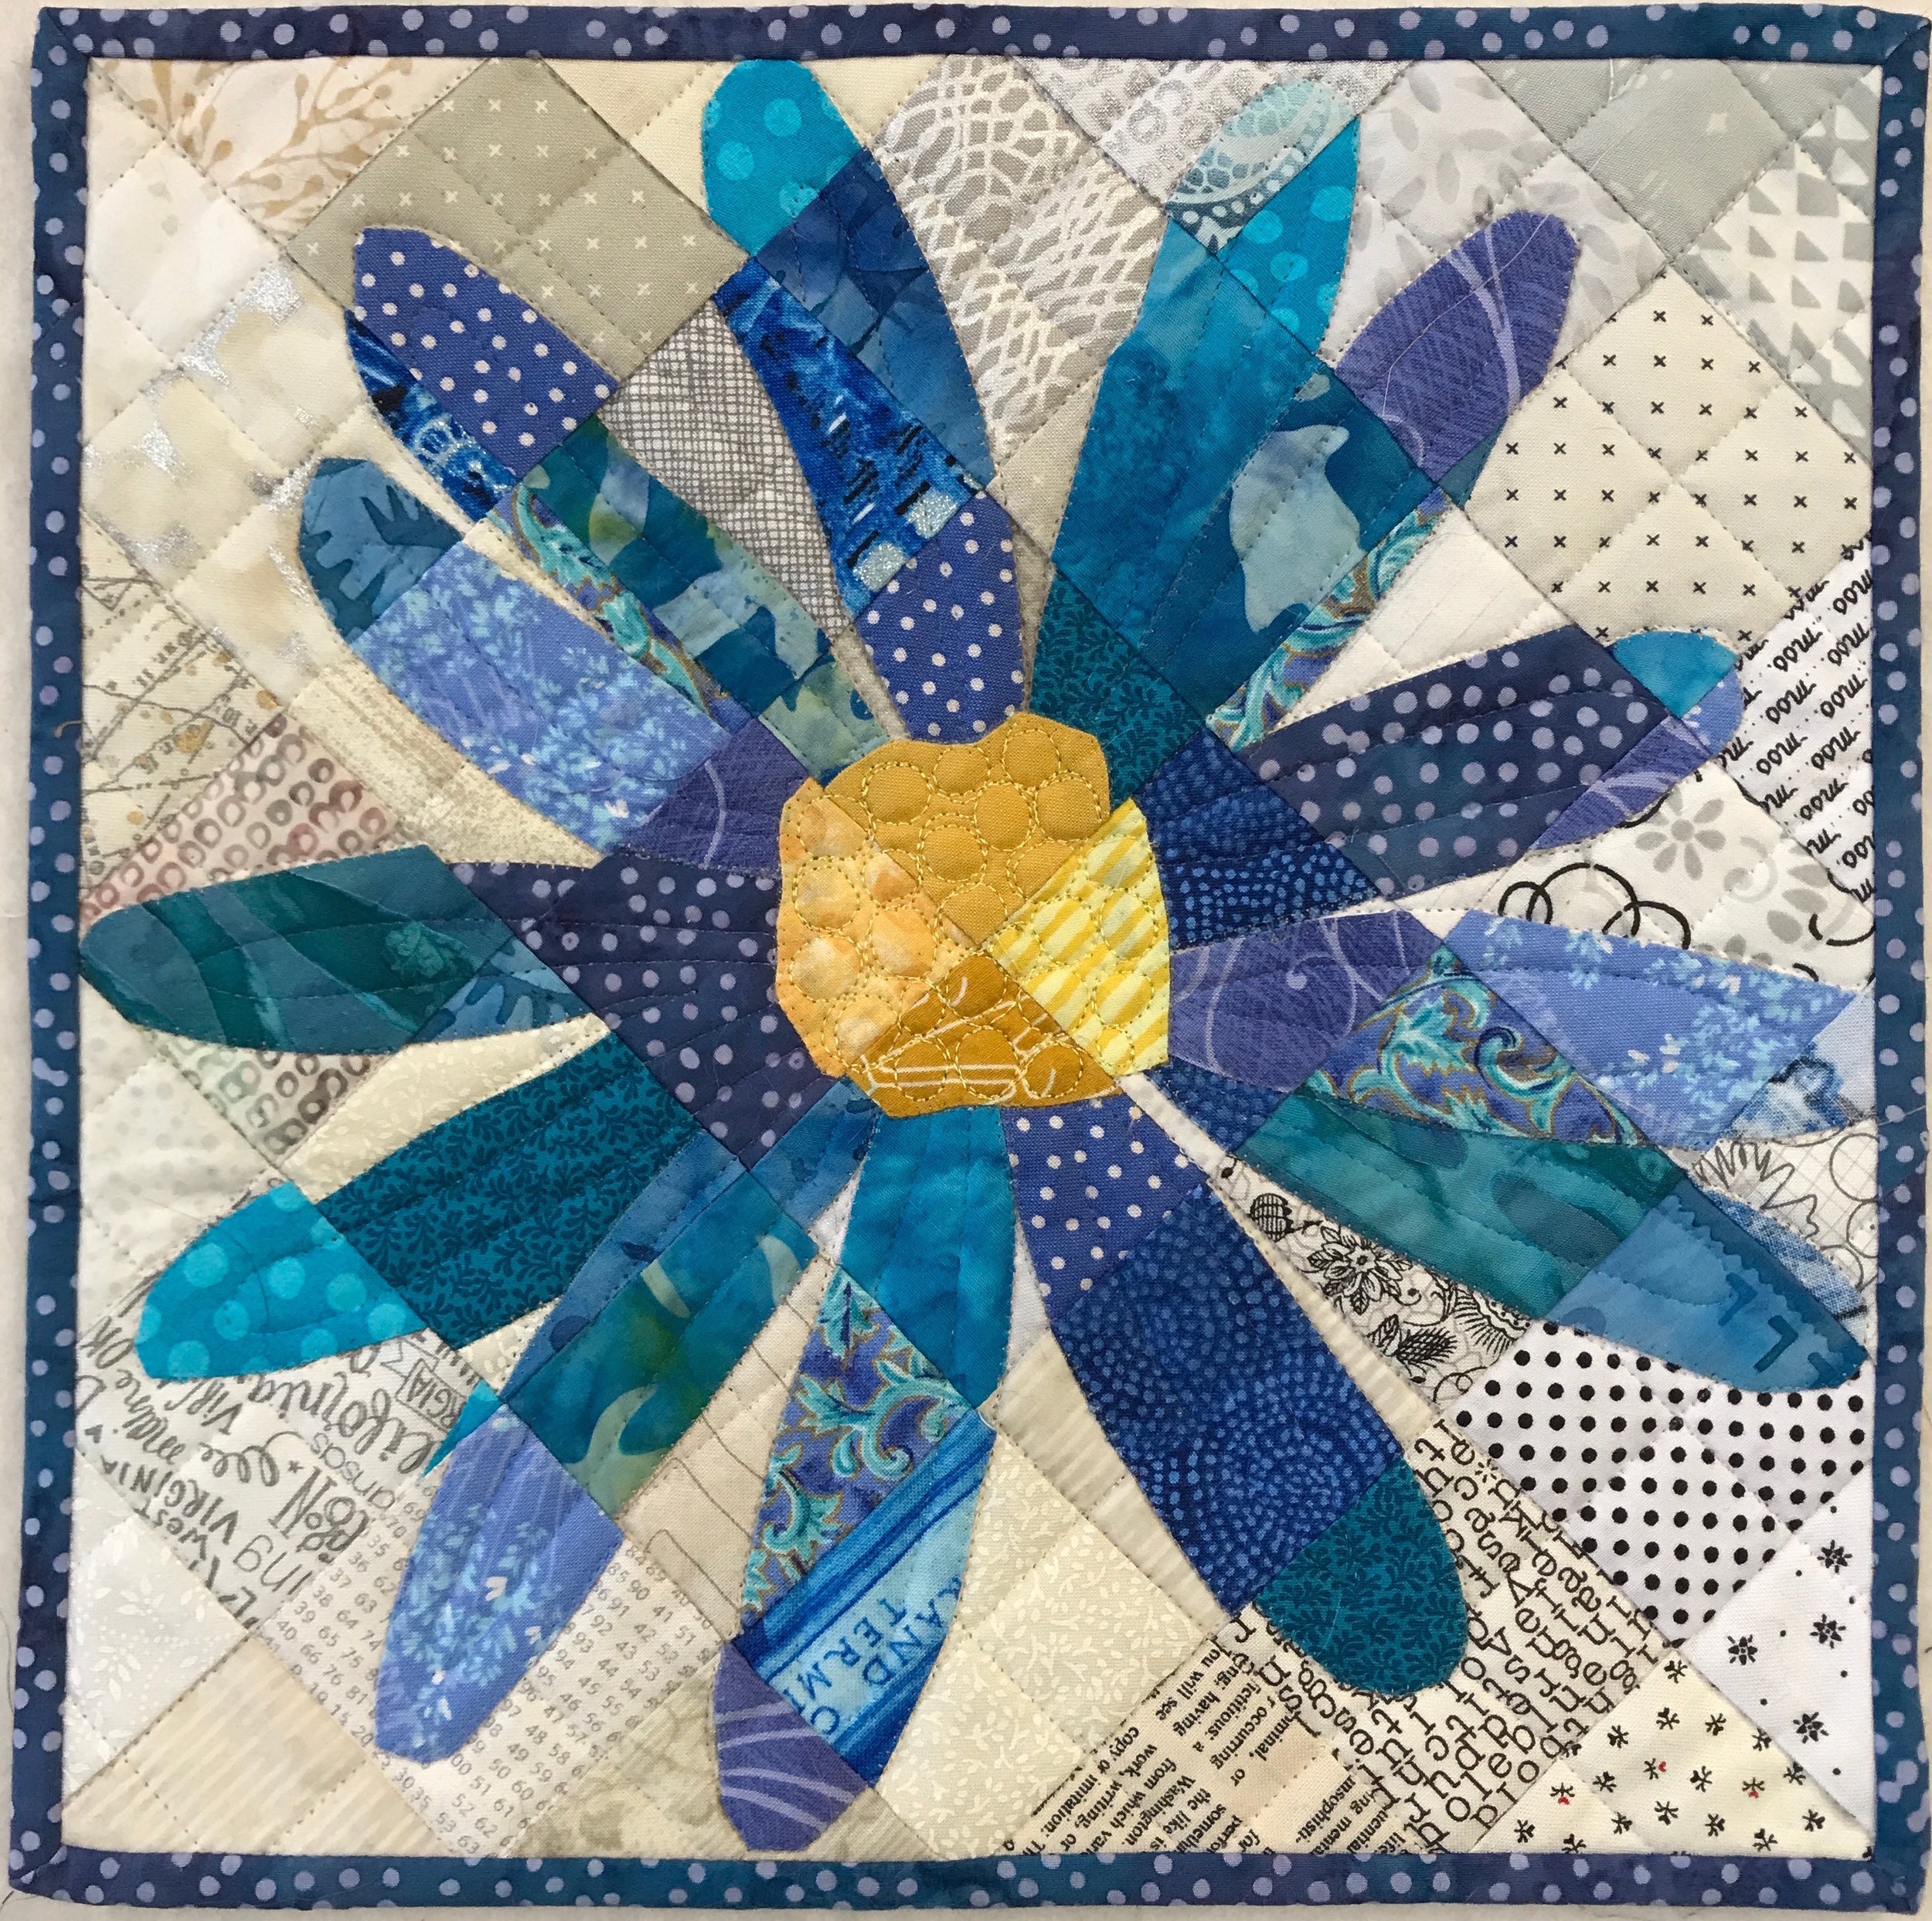 "- Stitched Mosaics (6 hours)Create photorealistic quilts one square at a time in this one-day workshop. Learn the techniques that make up Timna's Barnyard Series of animal quilts. Using a photo and kit provided in class, the process of making a fabric mosaic using turned edge machine applique is explained. We will break down the construction process, explore color and value as design elements, and learn how to choose the right fabric for the right location. For intermediate level quilters.Kit Fee: $45. Kit includes fabric squares needed for the top (finishes 11""x11""), photo, and assorted notions."